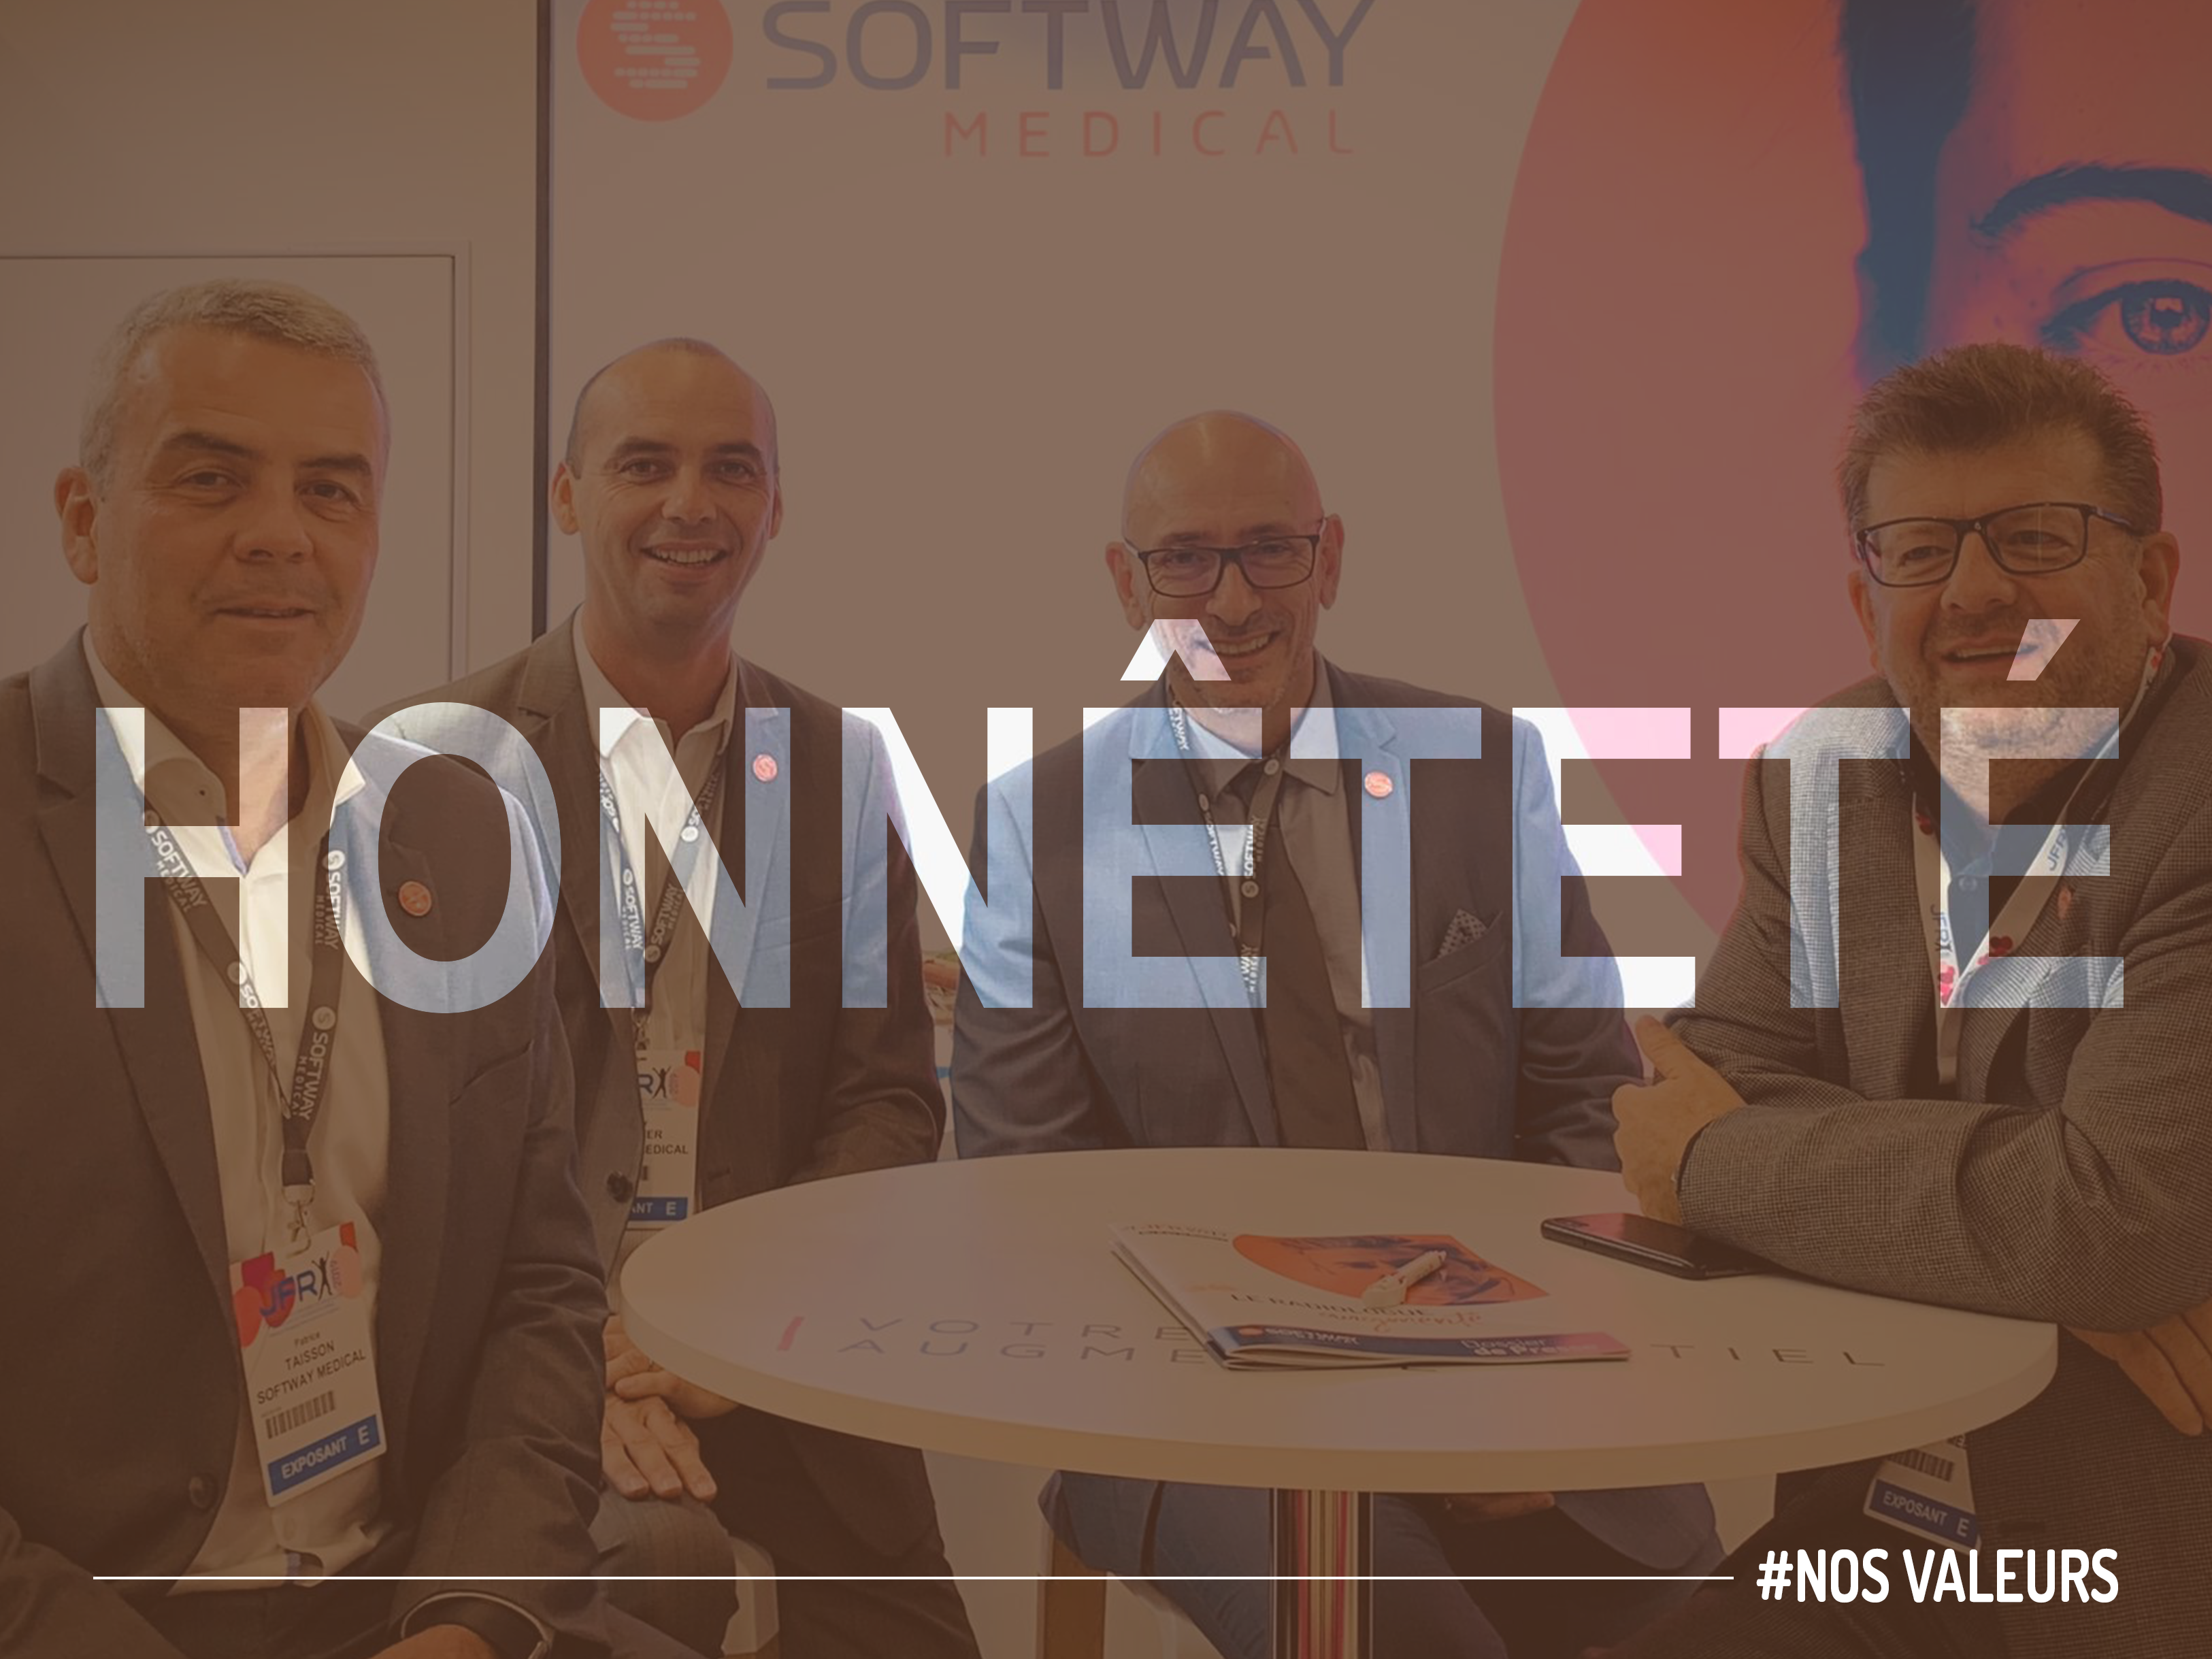 Elles sont 6 et sont l'ADN des collaborateurs de Softway Medical…